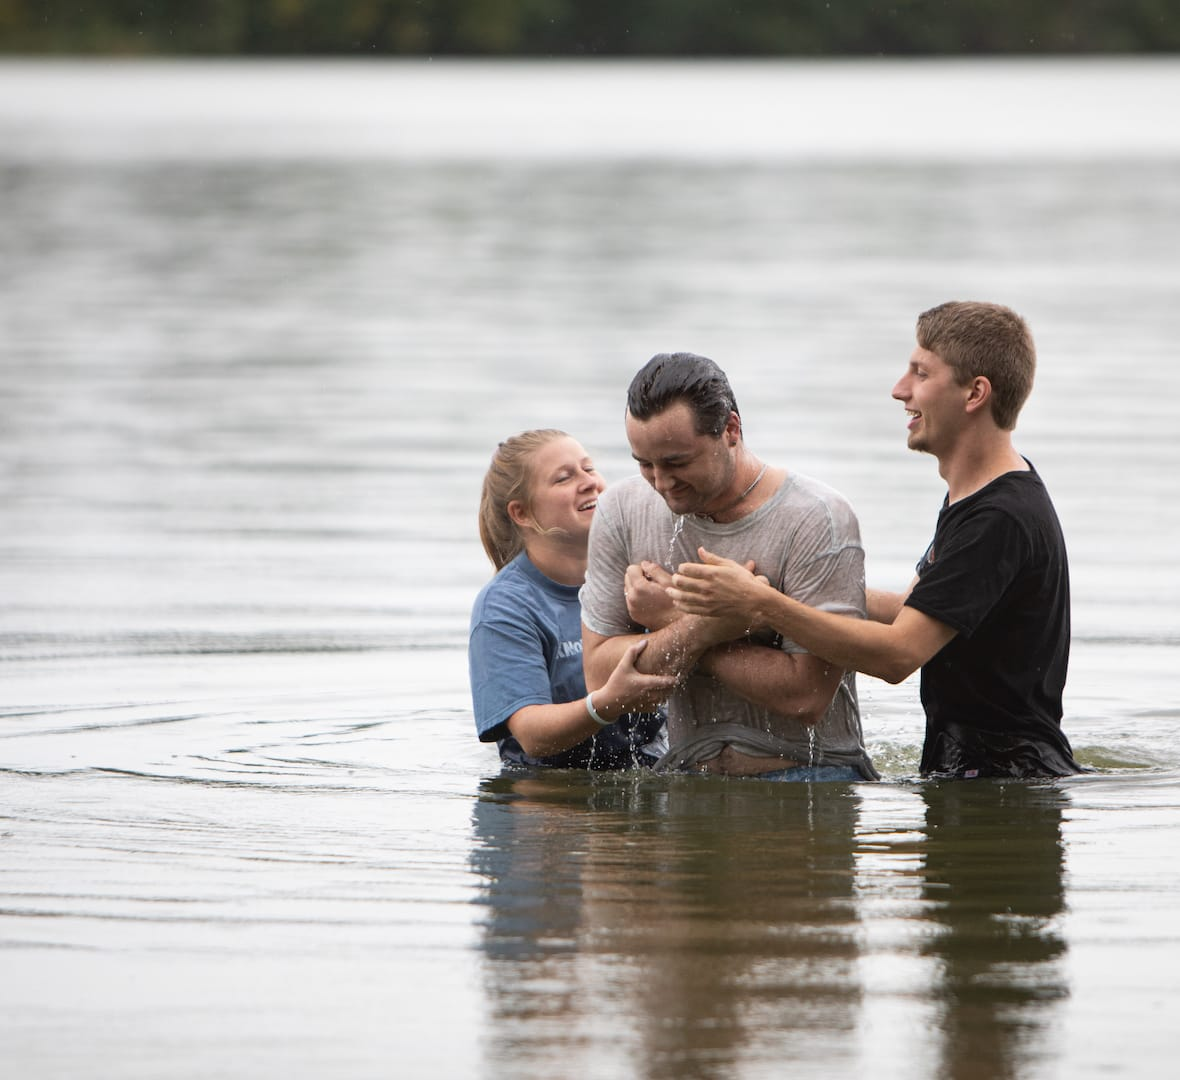 baptism in river crown college culture